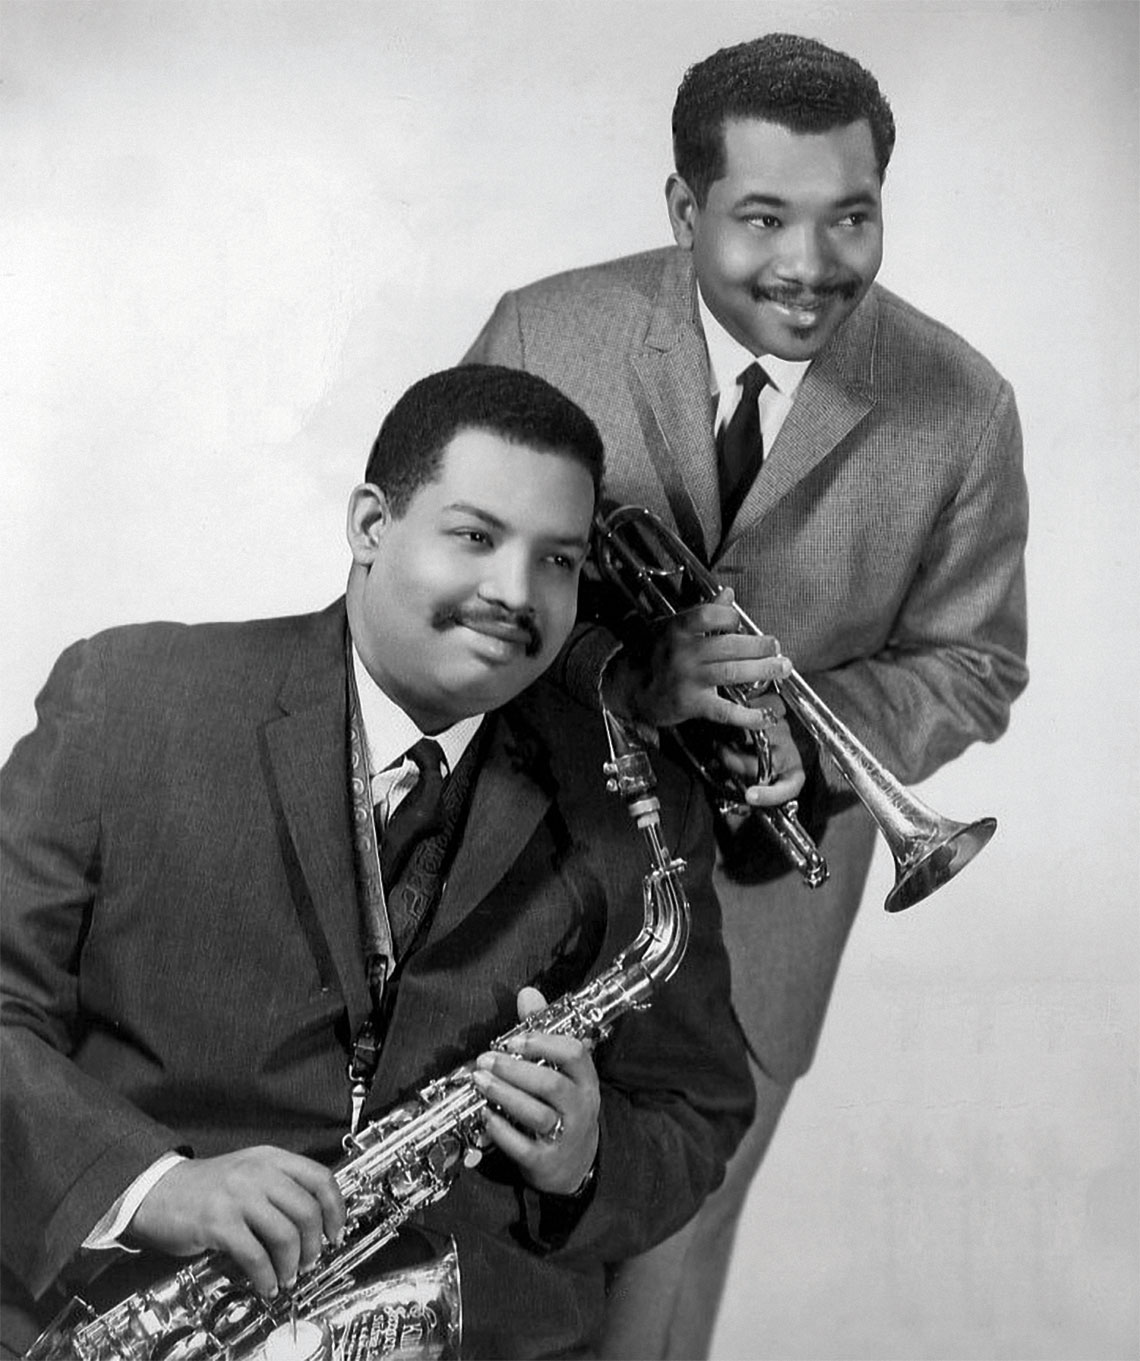 Before fame, jazz legend Cannonball Adderley put his musical skill to work in local clubs and at Dillard High School.